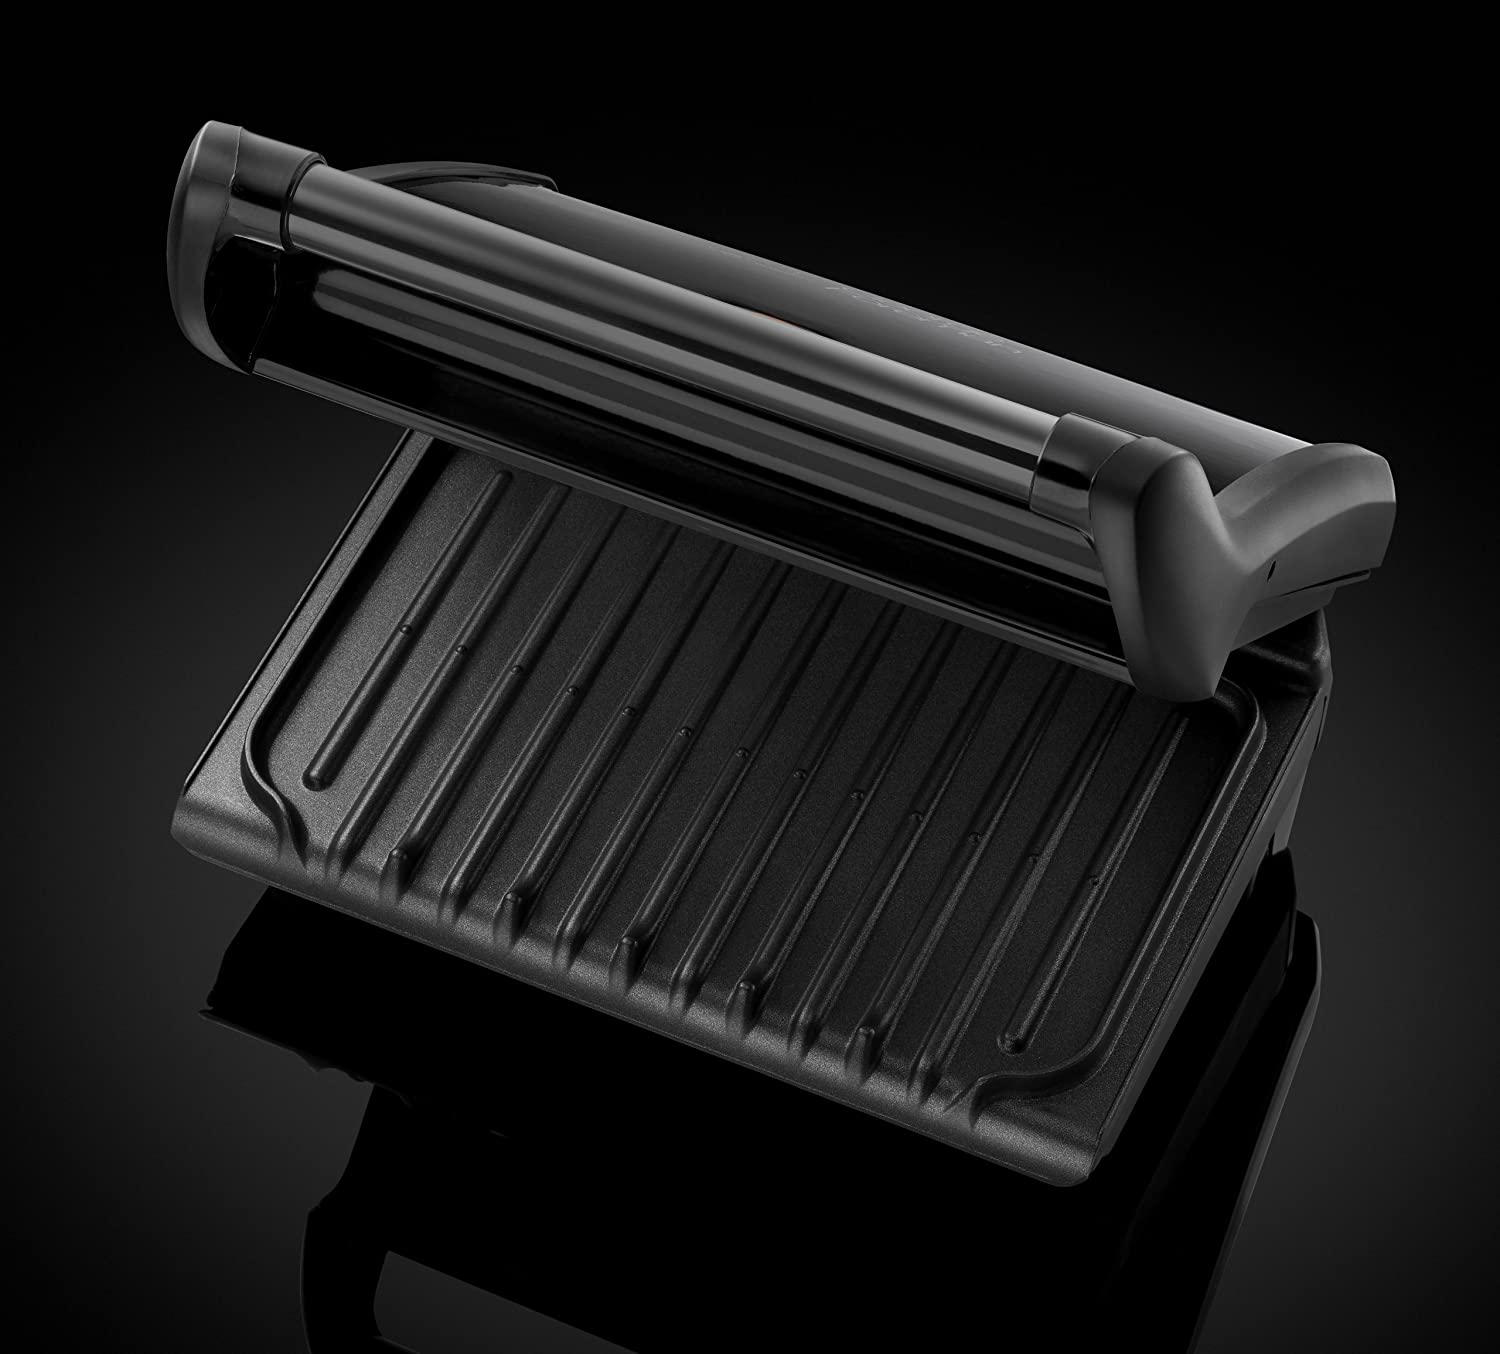 George foreman 5 portion large family bbq electric grill machine non stick new ebay - Drip tray george foreman grill ...